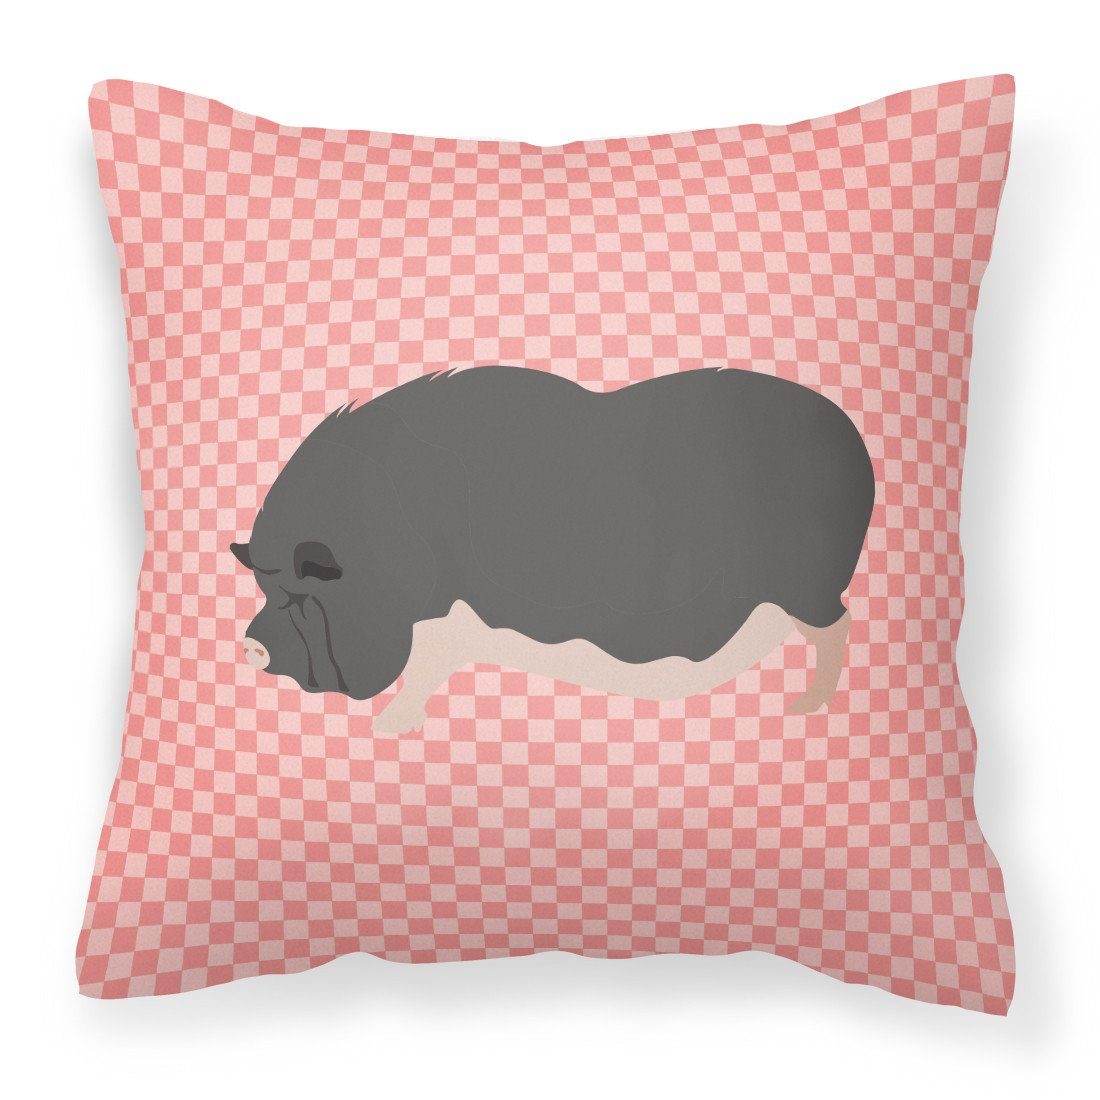 Vietnamese Pot-Bellied Pig Pink Check Fabric Decorative Pillow BB7941PW1818 by Caroline's Treasures